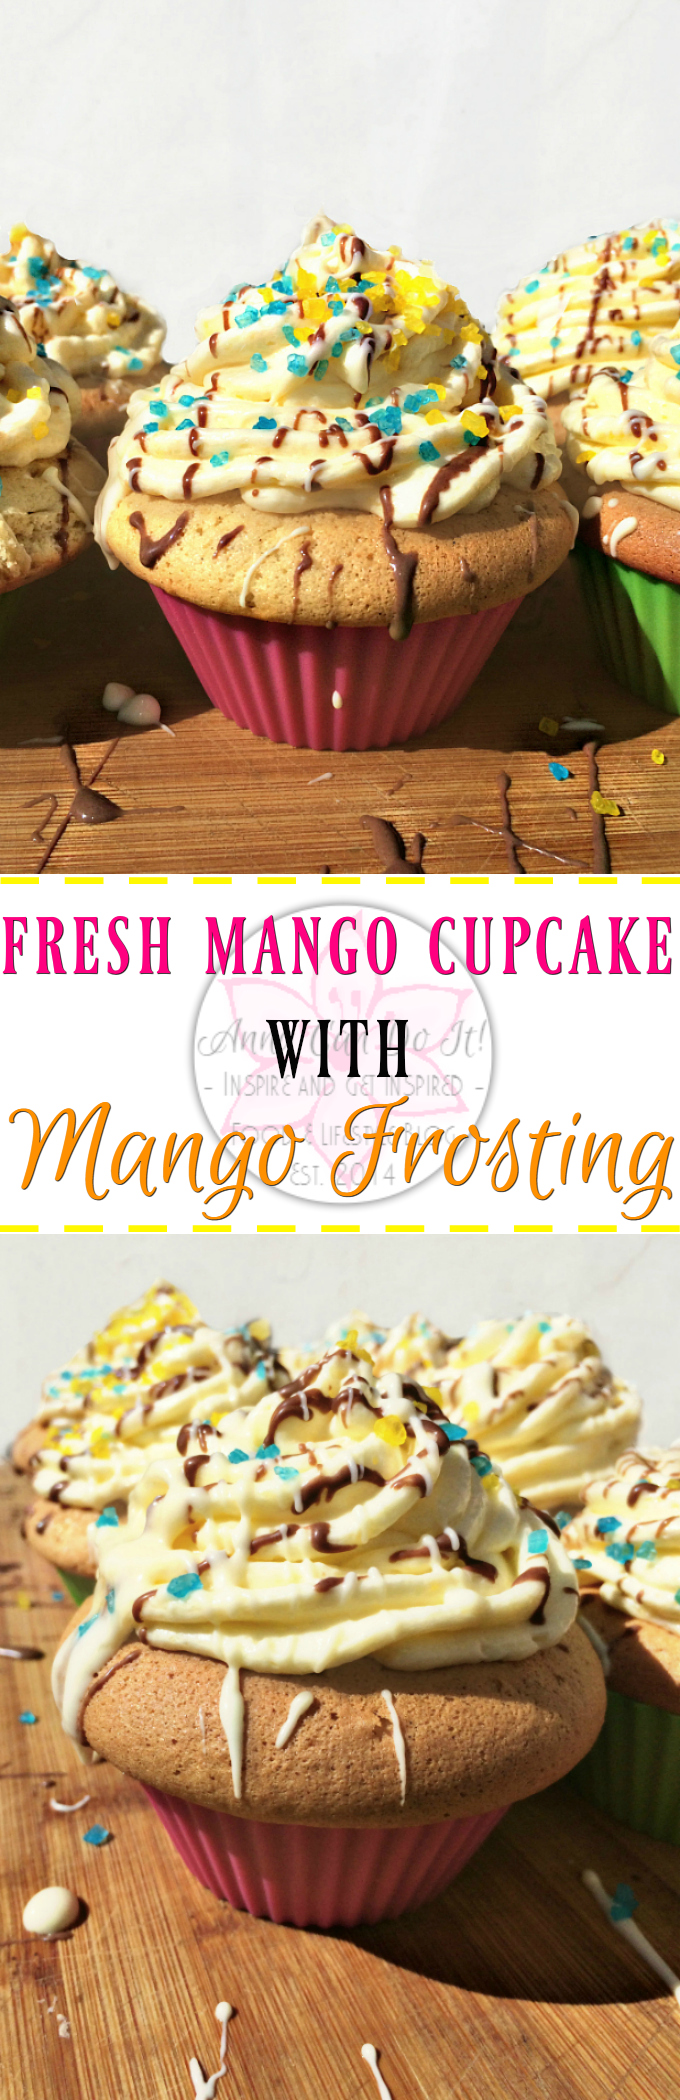 Fresh Mango Cupcake with Mango Frosting - Anna Can Do It! * Fresh Mango Cupcake with Mango Frosting is a rich vanilla cupcake with fresh mango pieces with luscious mango frosting. It's probably not my healthiest recipe, but believe me, worth to try it!